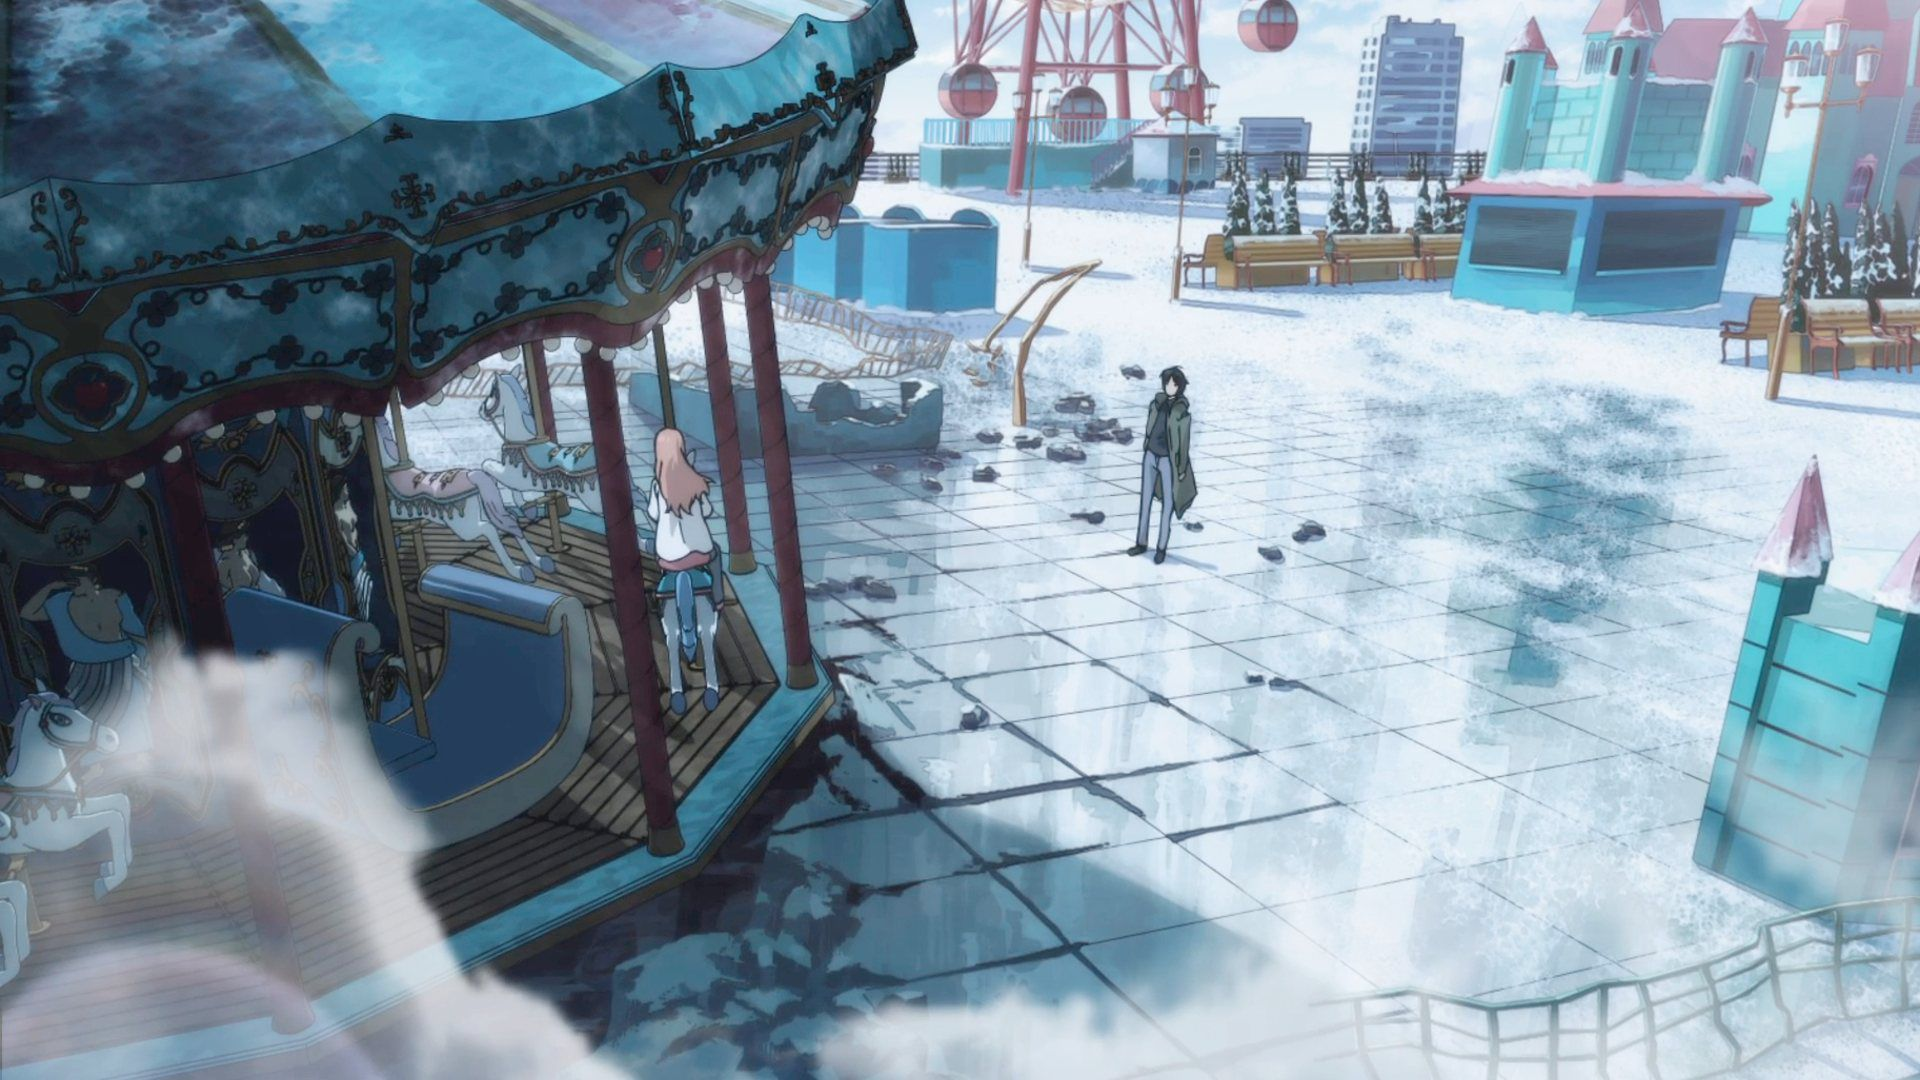 Eden of the East Anime scenery, Anime fanart, Kawaii anime